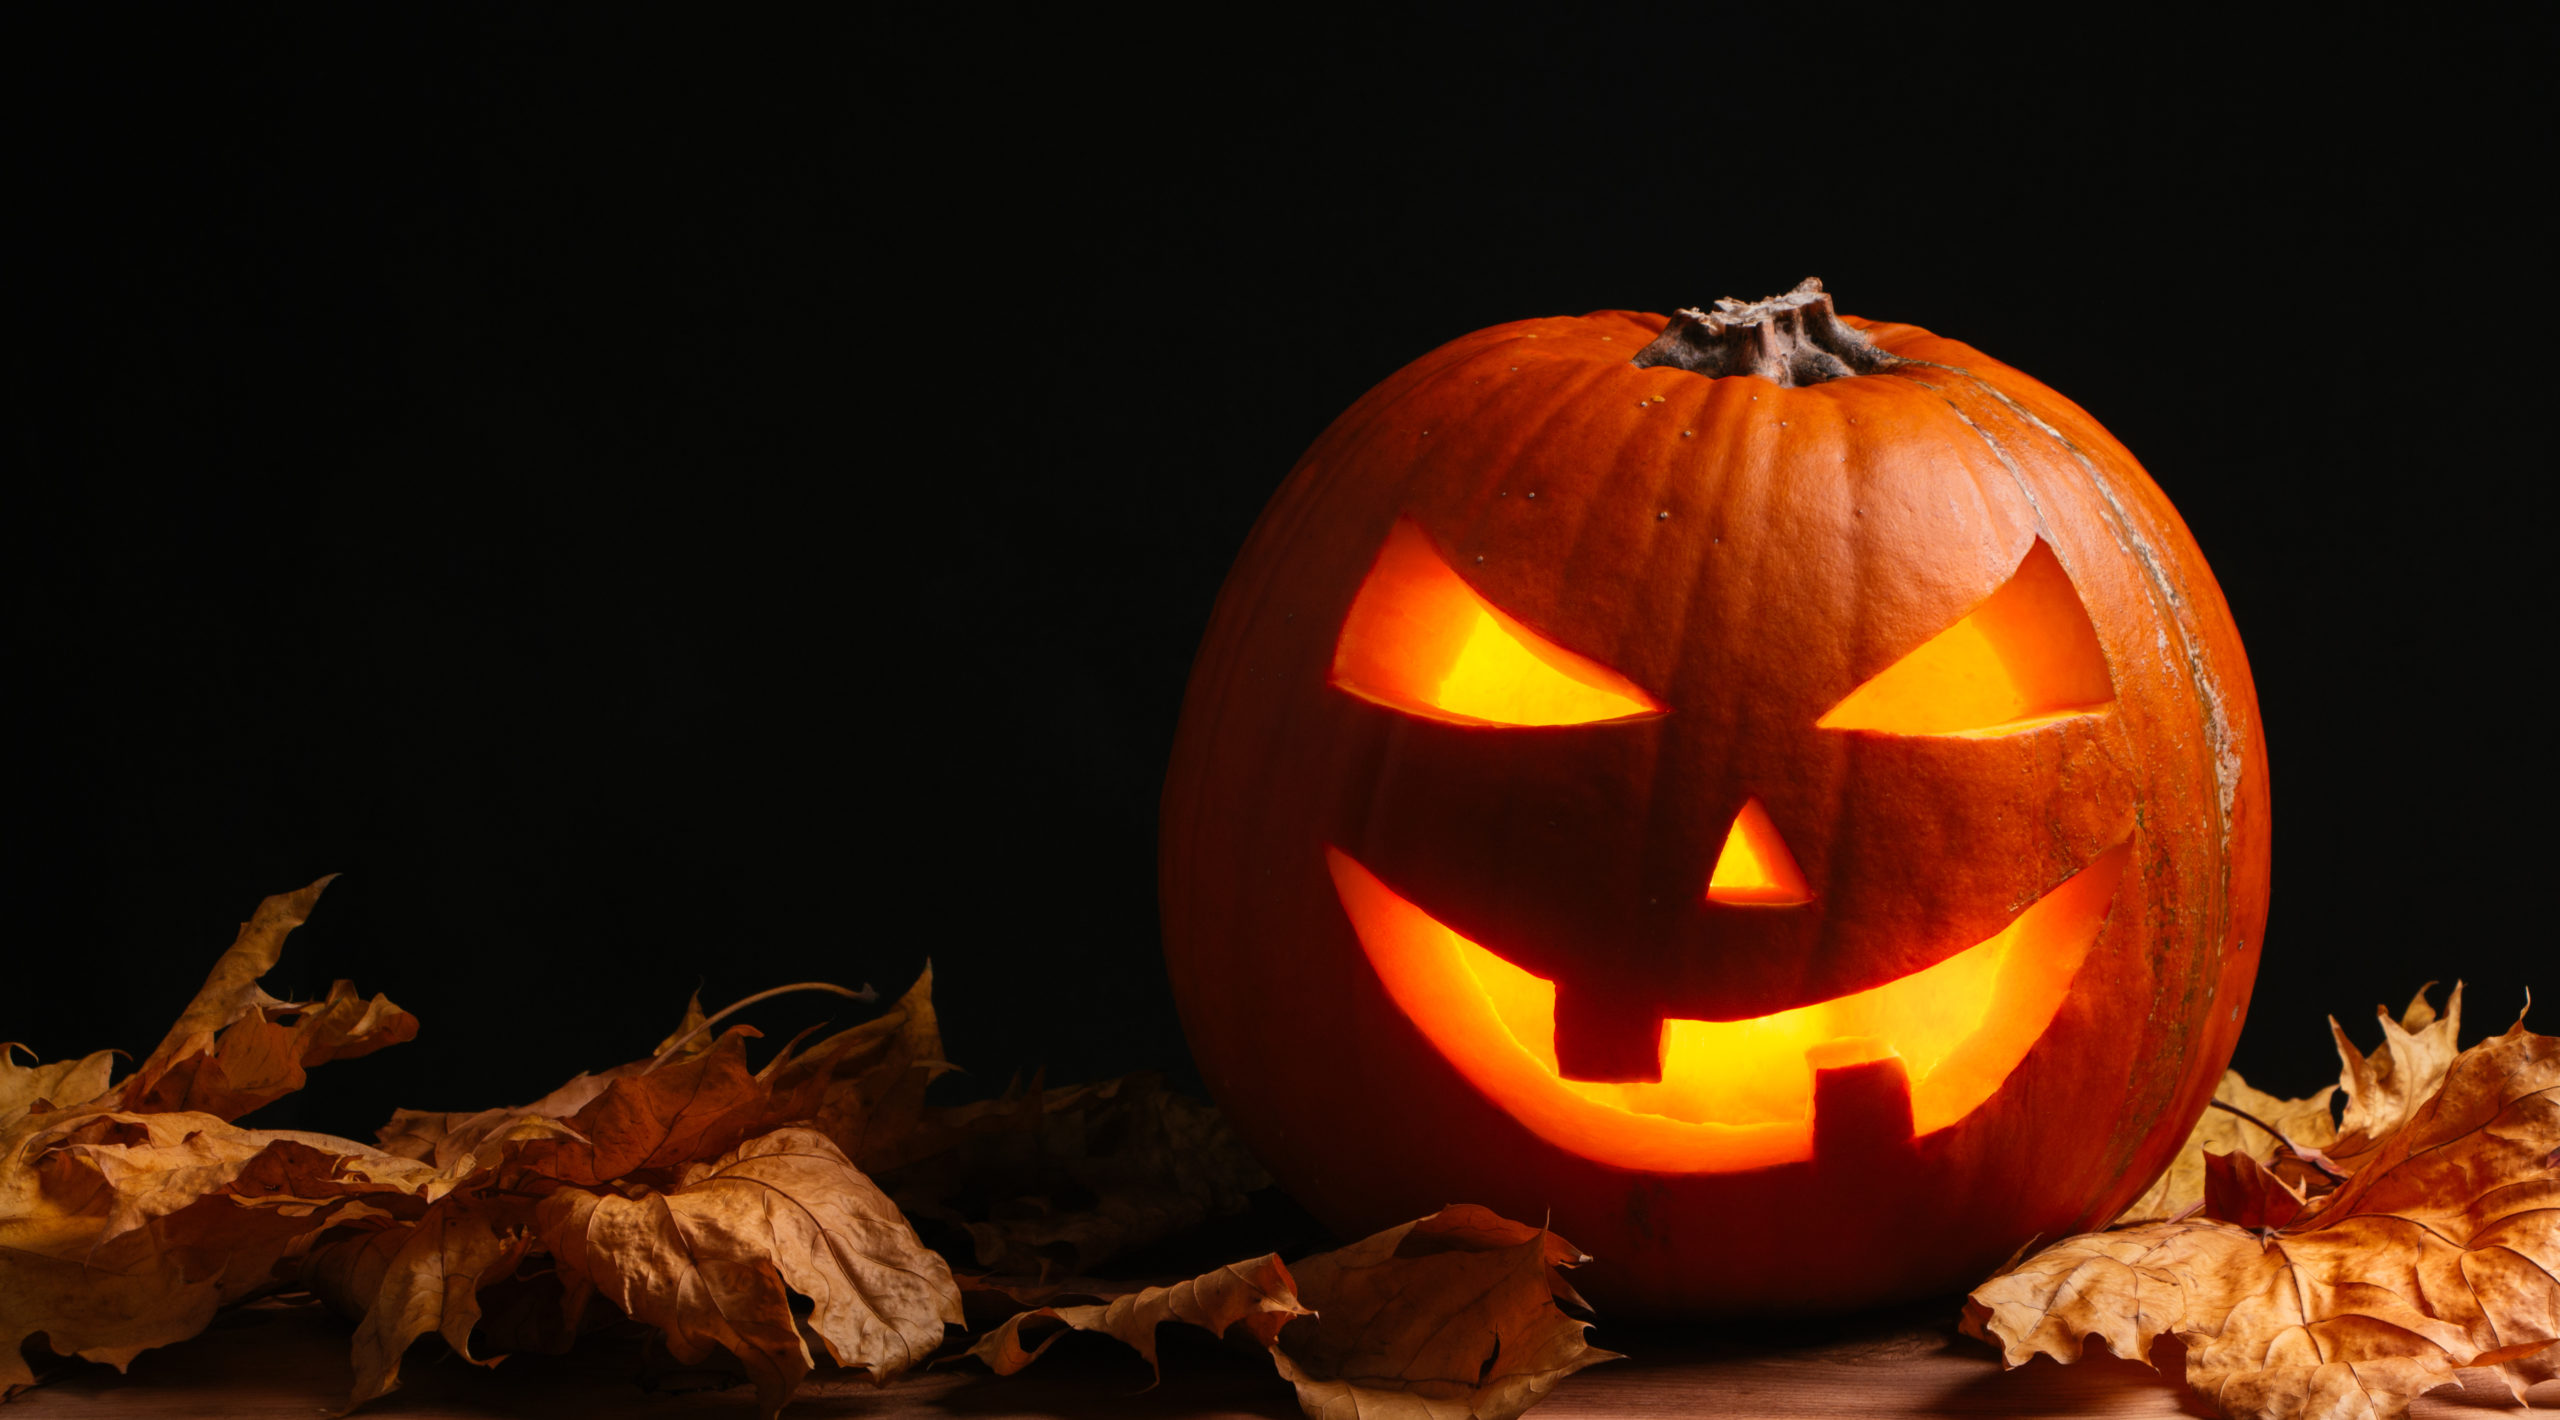 Know the Halloween Injury Risks